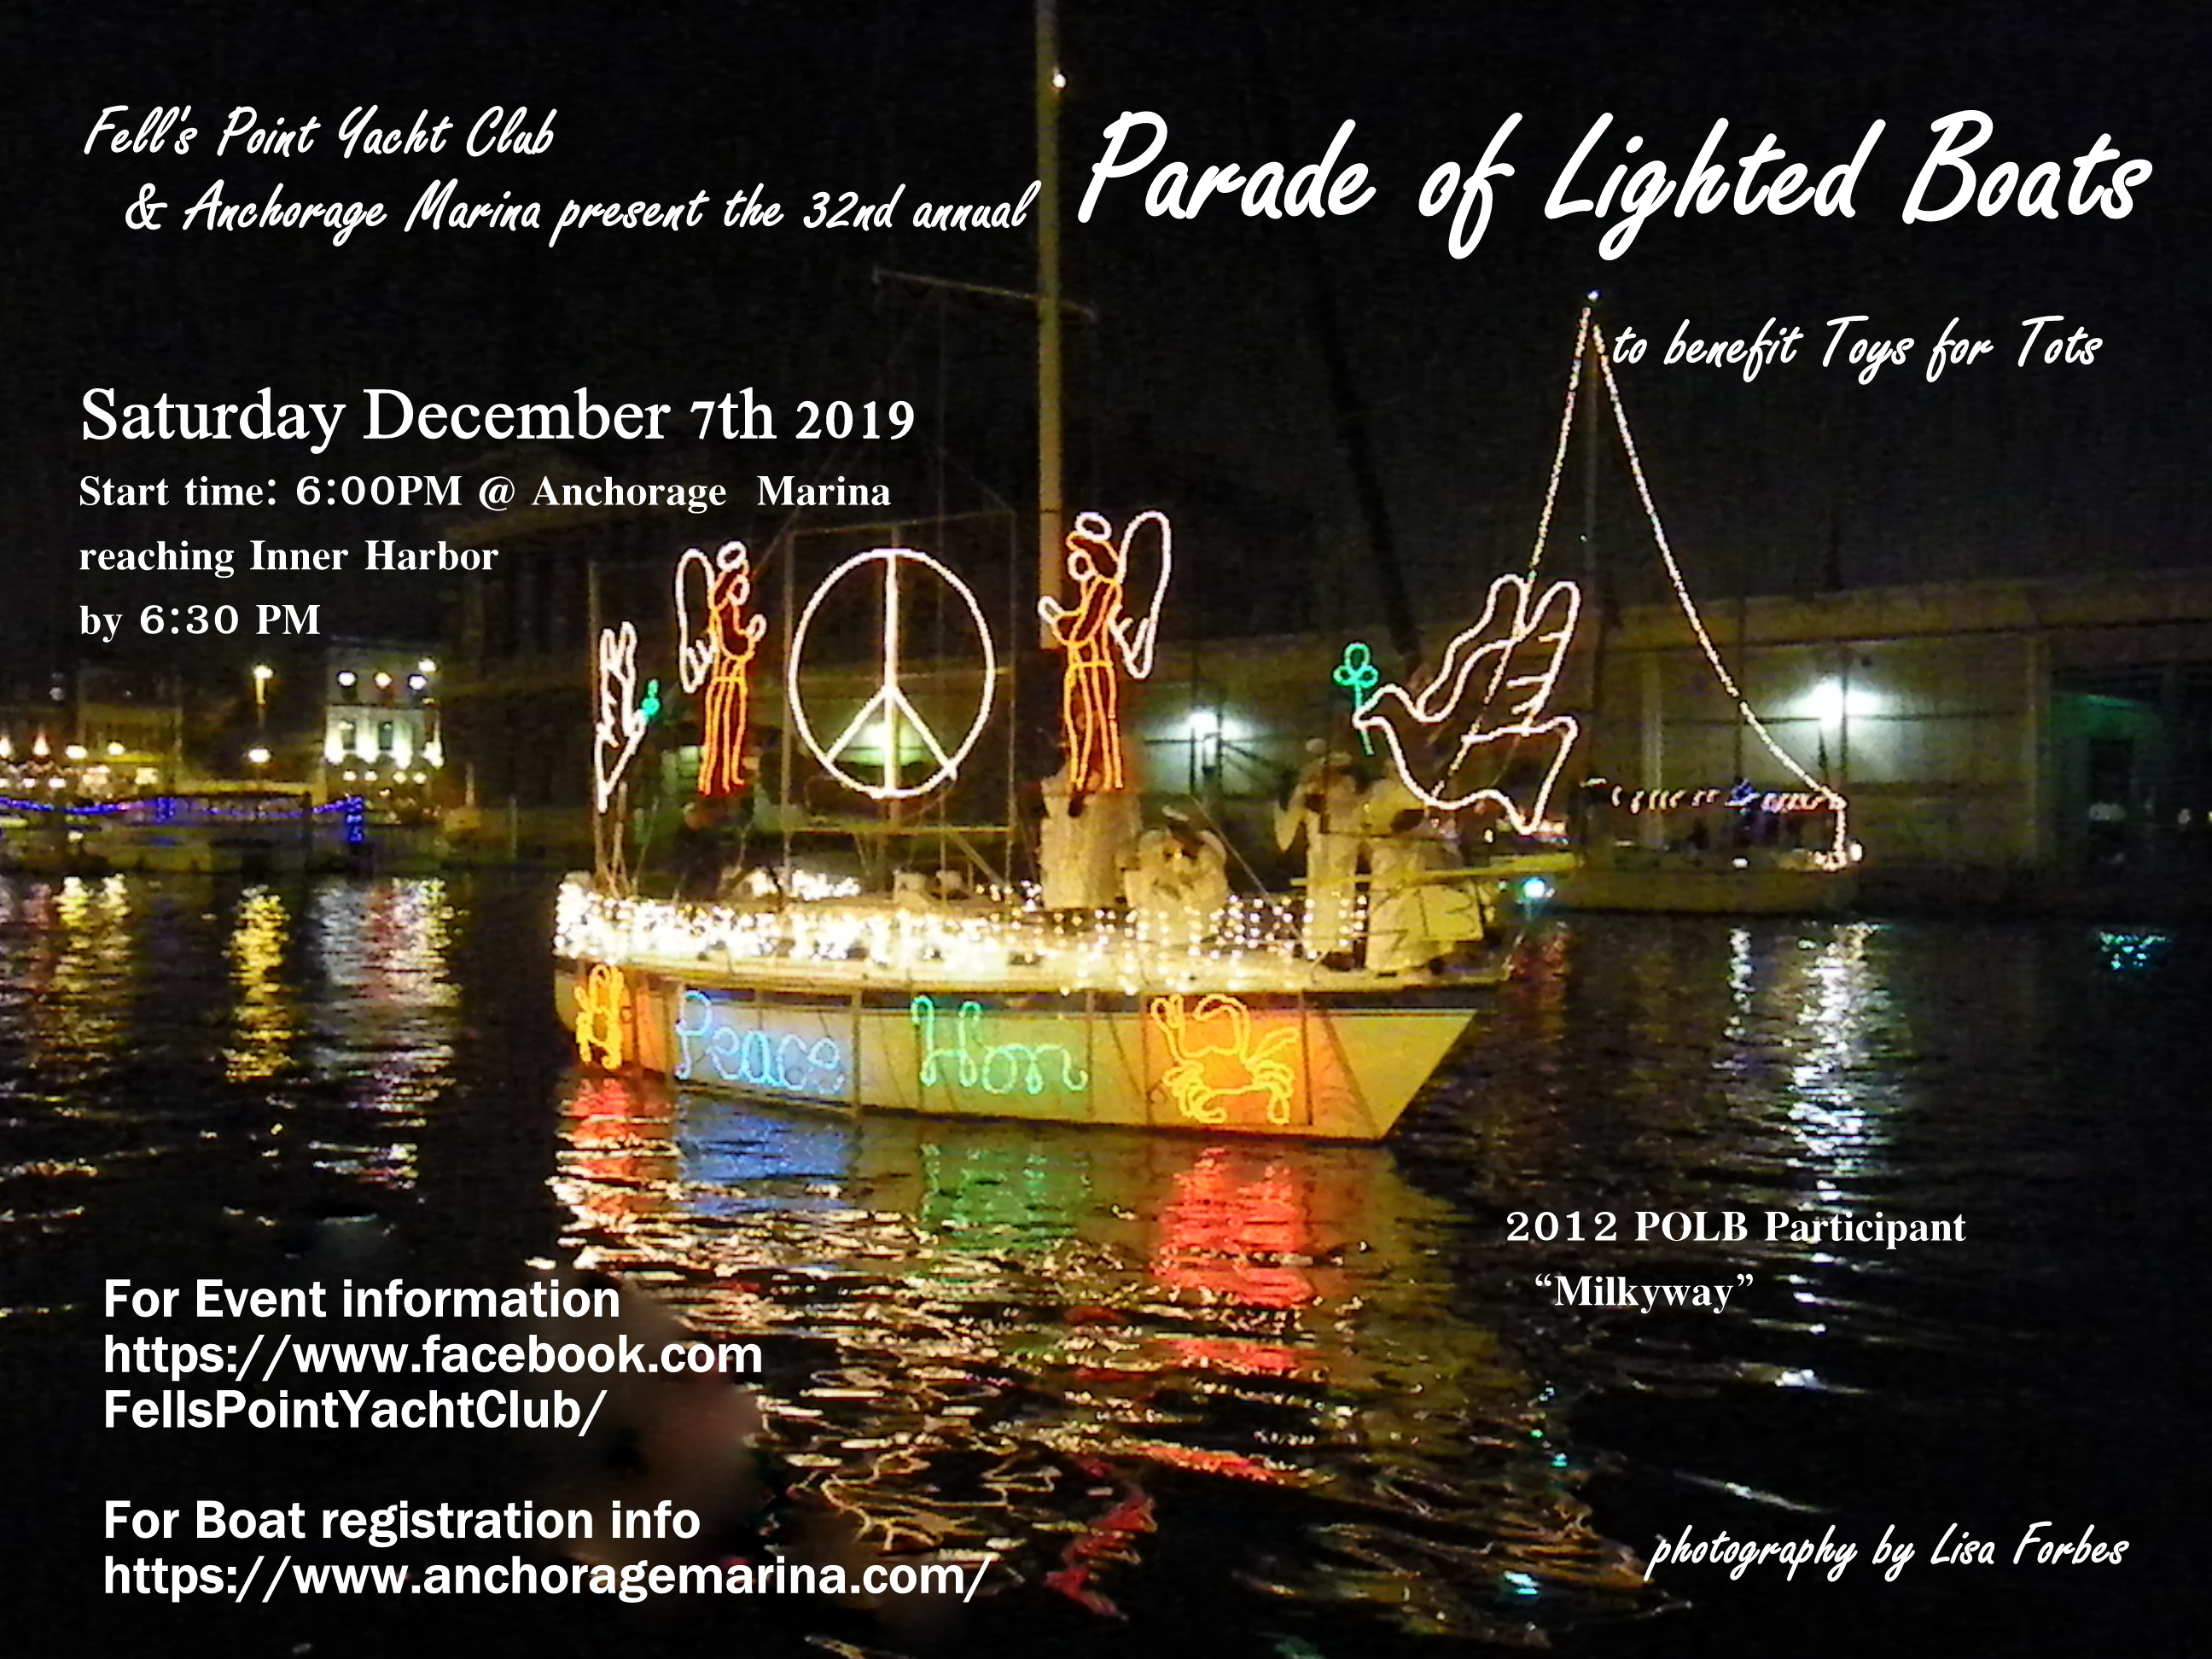 Baltimore Parade of Lighted Boats | Lighted Boat Parades | Snag-A-Slip